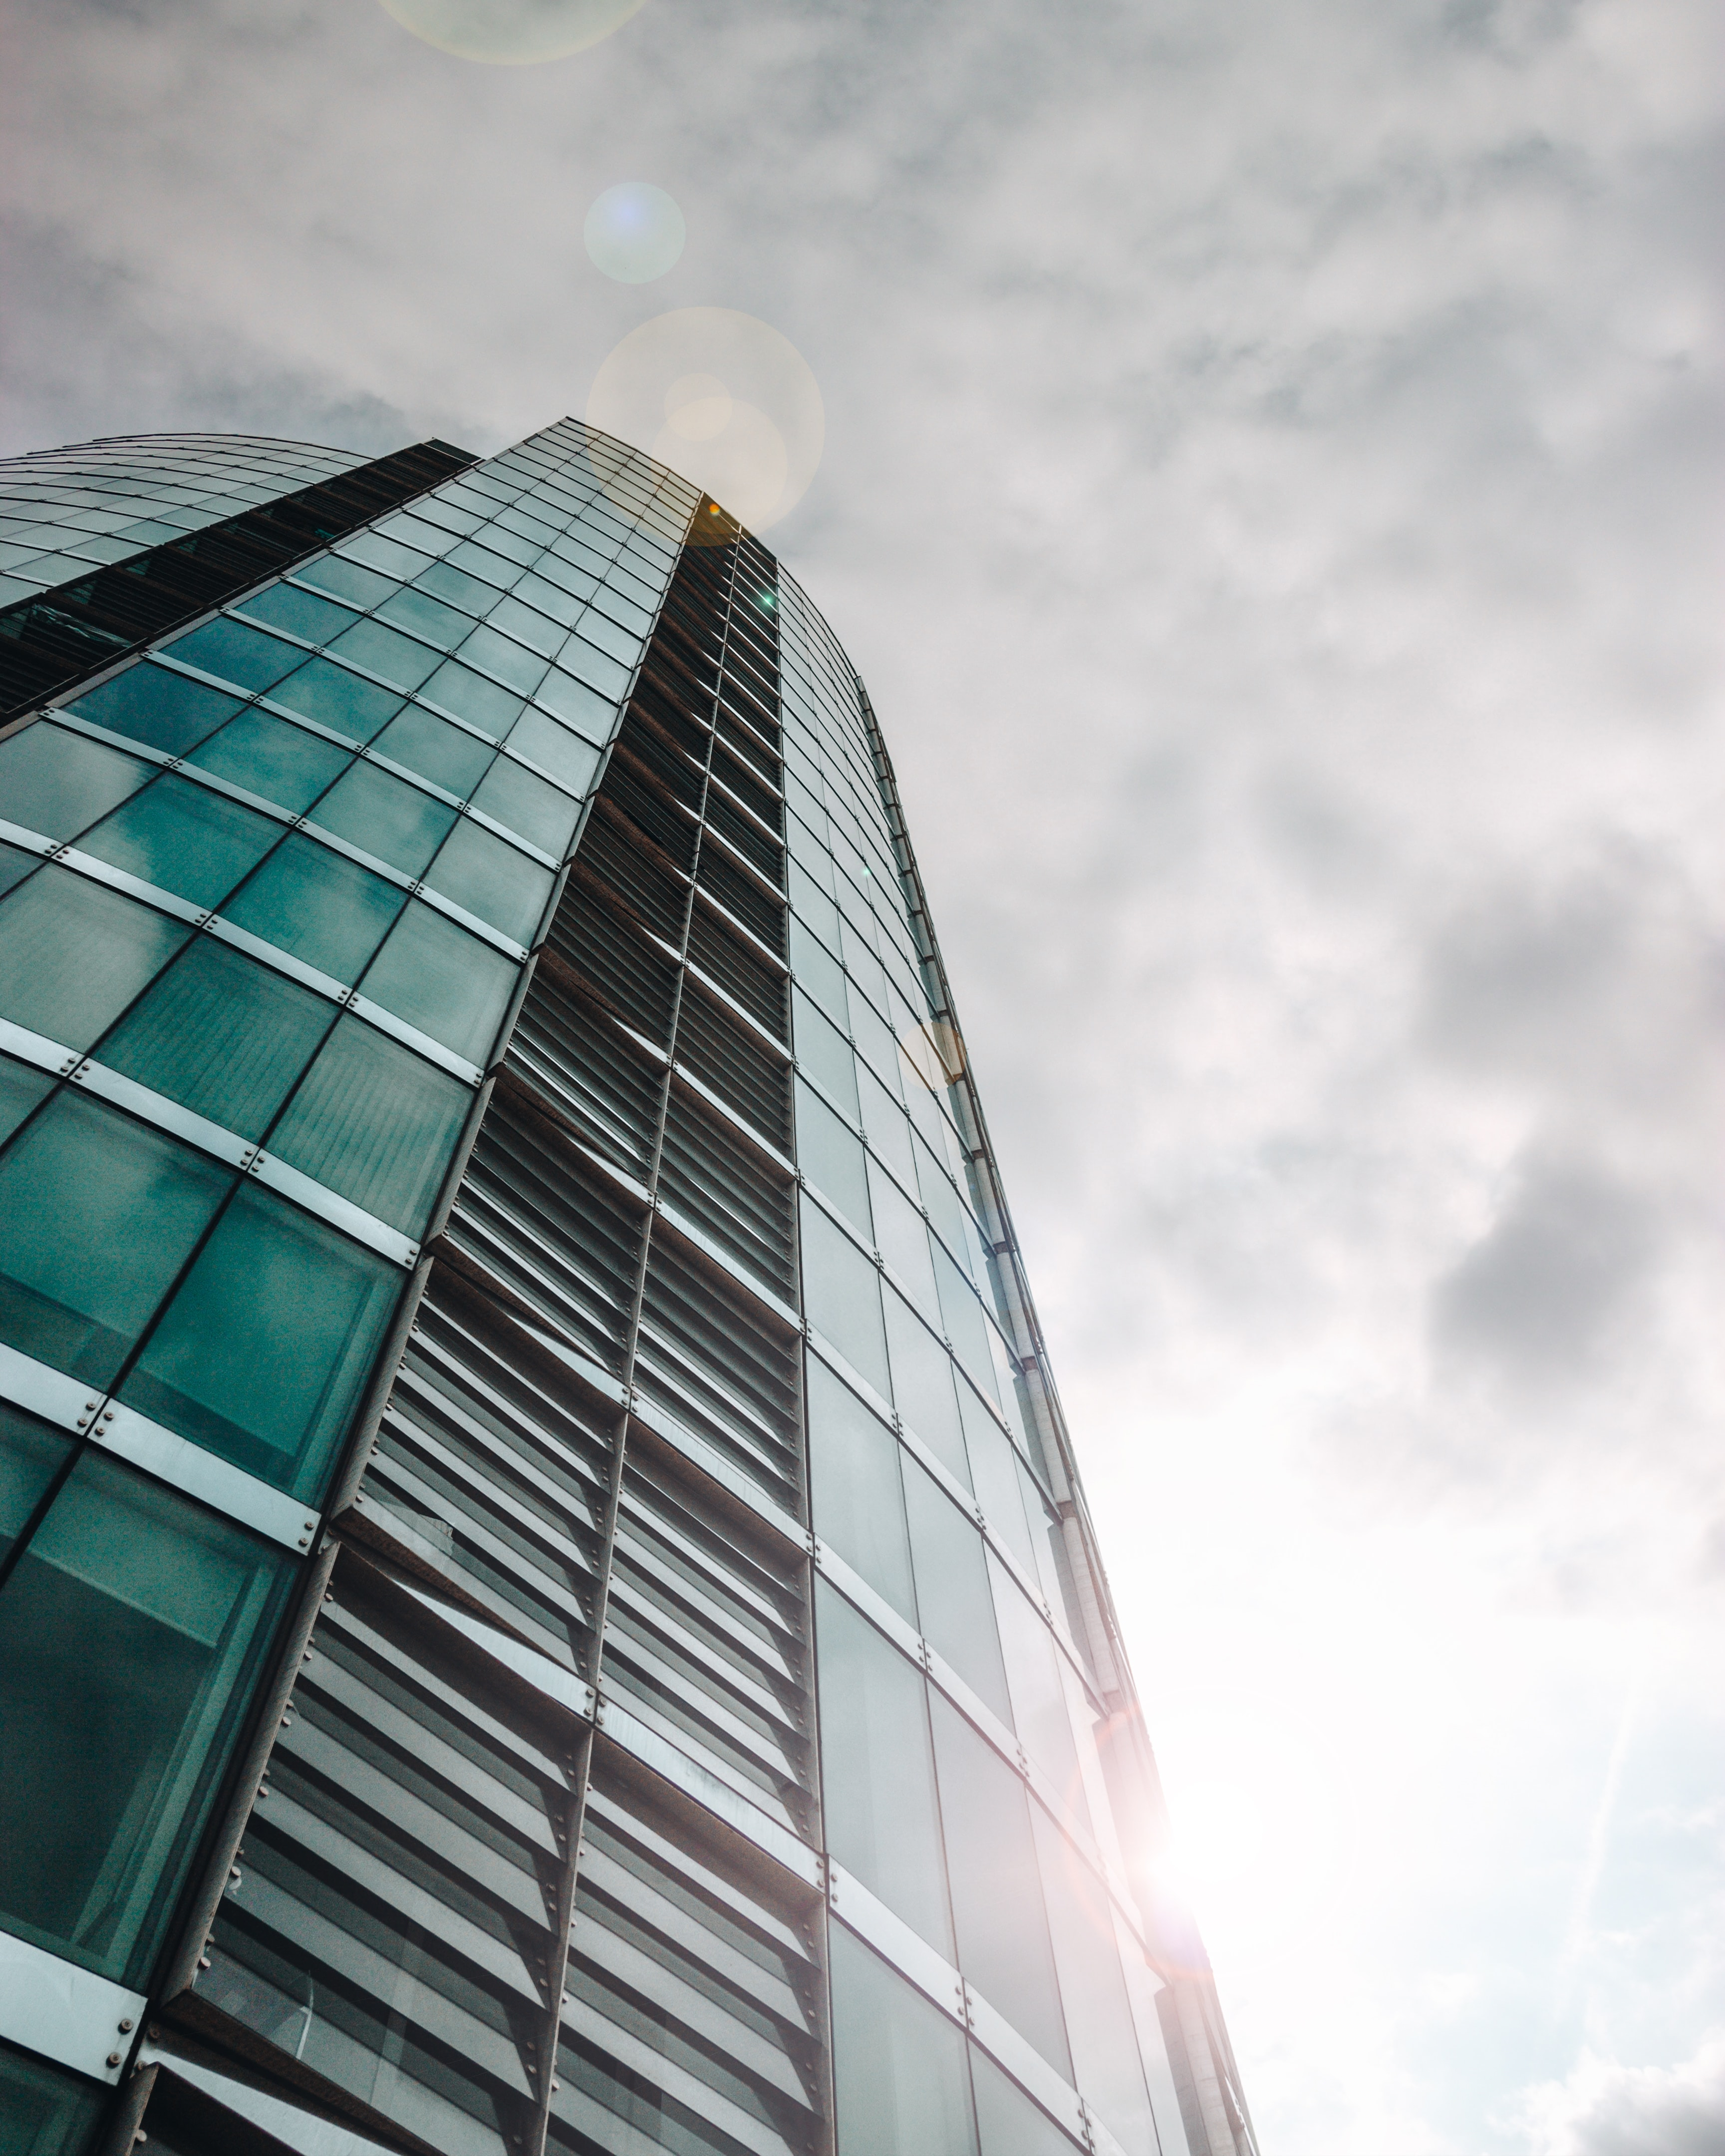 low-angle photography of gray glass concrete high-rise building